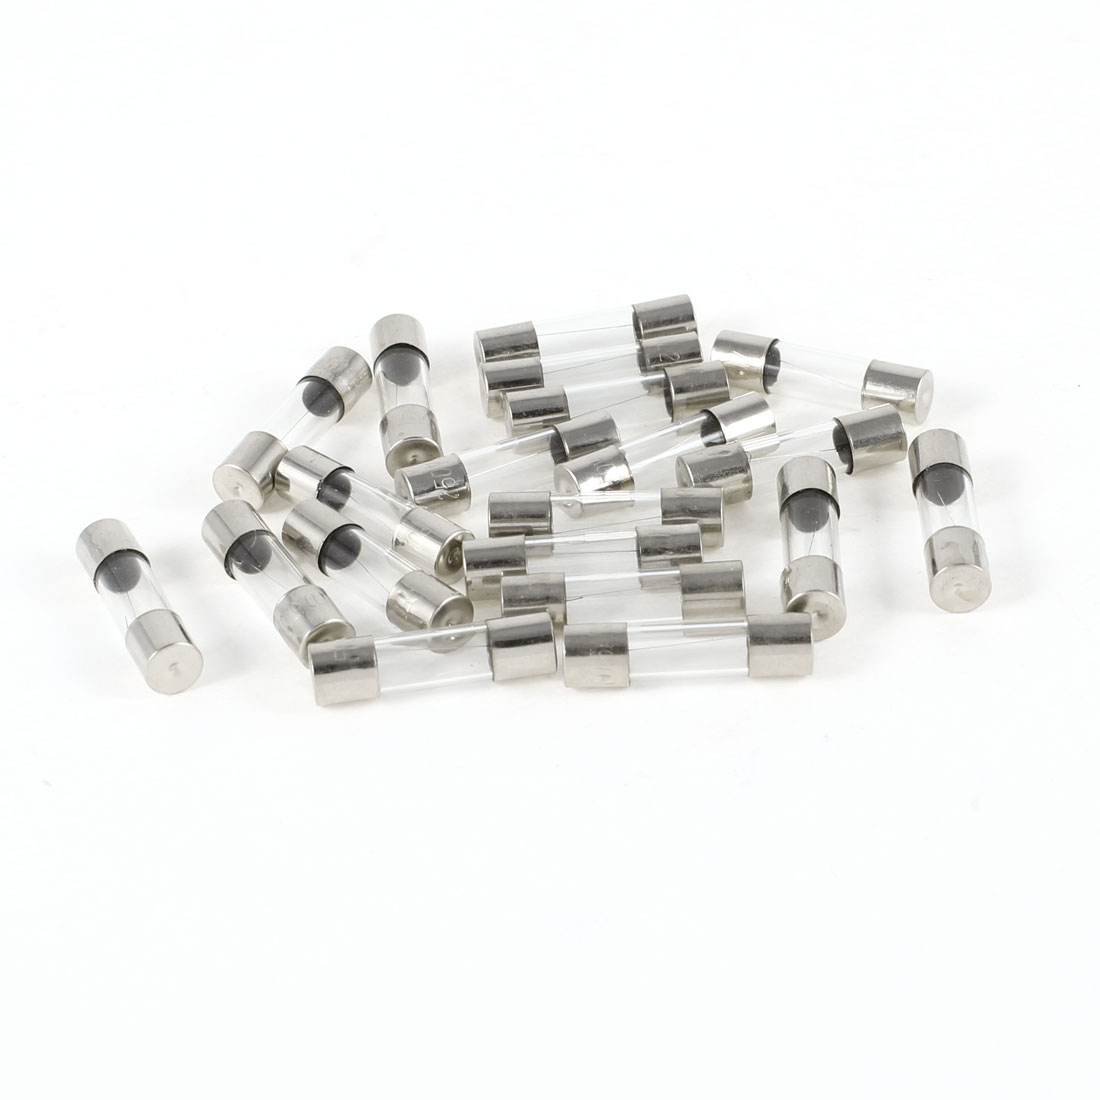 20pcs Fast Blow Glass Tube Fuse 0.5A 250V 5mm x 20mm